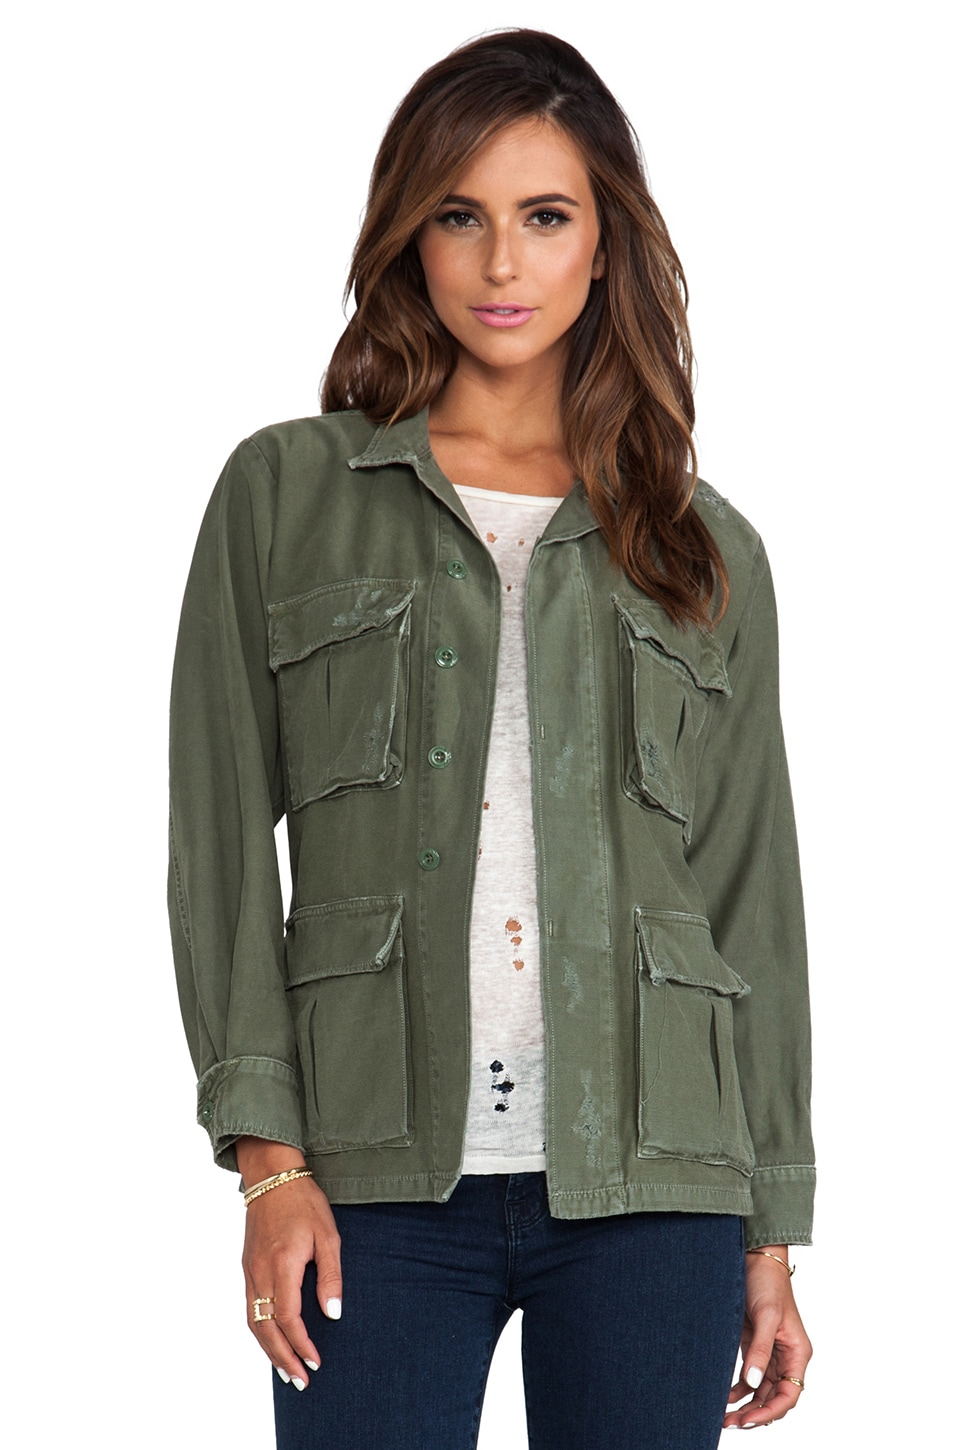 Citizens of Humanity Kylie Military Jacket in Fatigue